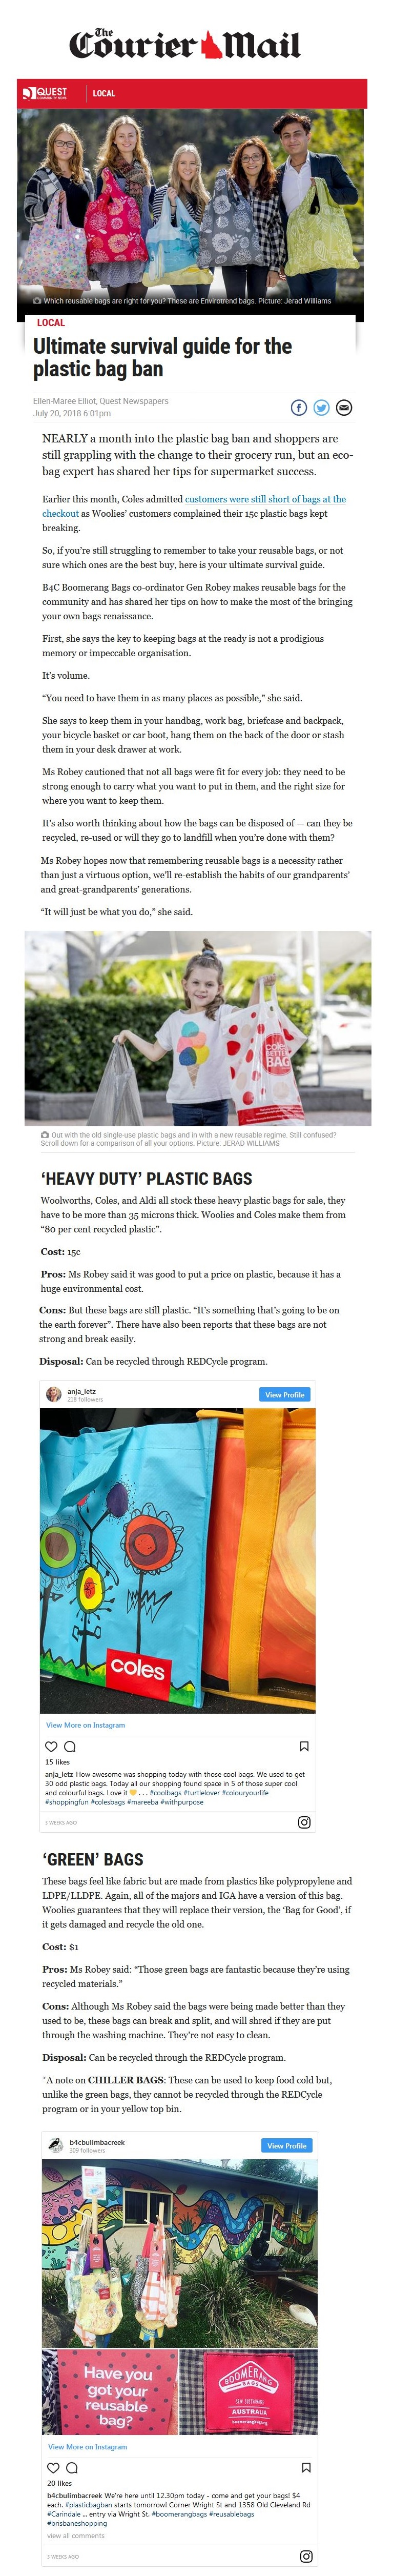 Ultimate survival guide for the plastic bag ban